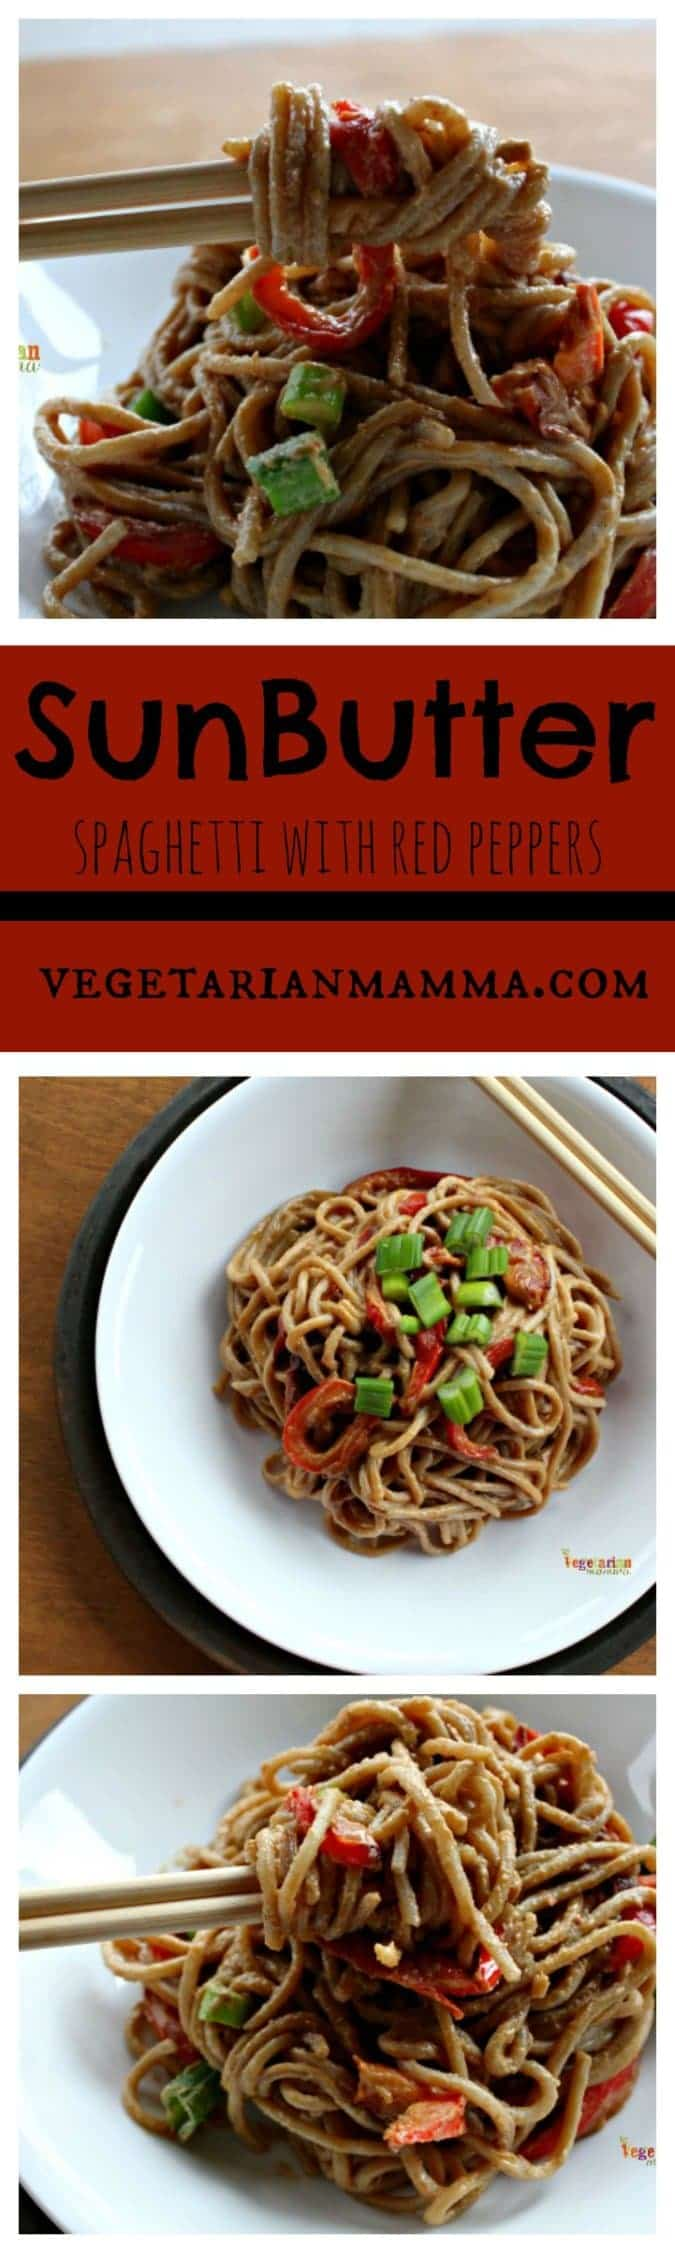 SunButter Spaghetti with Red Peppers @VegetarianMamma.com Dinner is Served